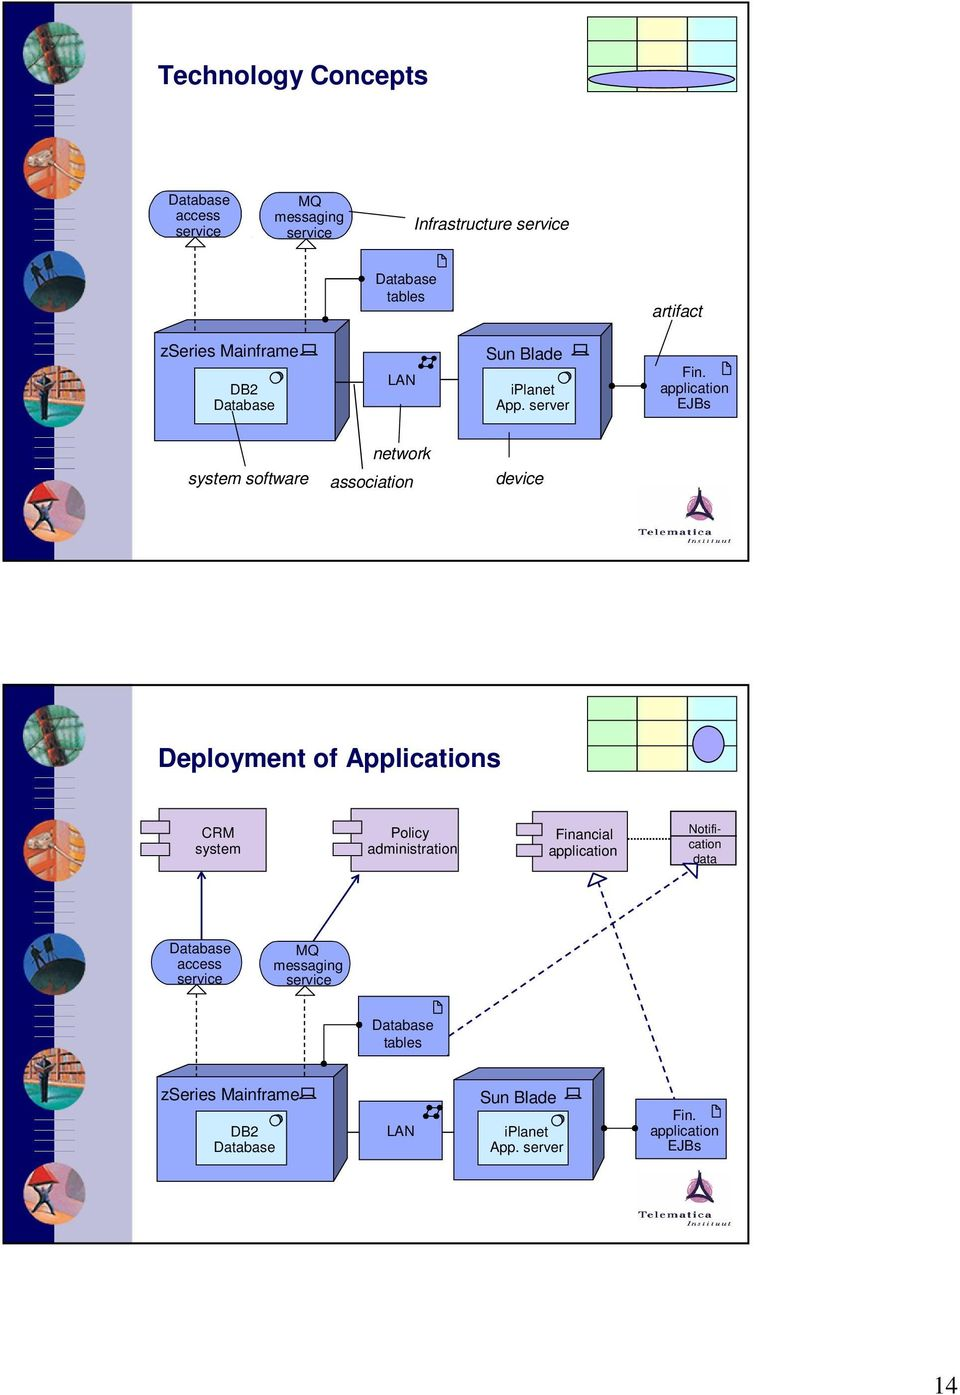 application EJBs system software network association device Deployment of Applications CRM system Policy